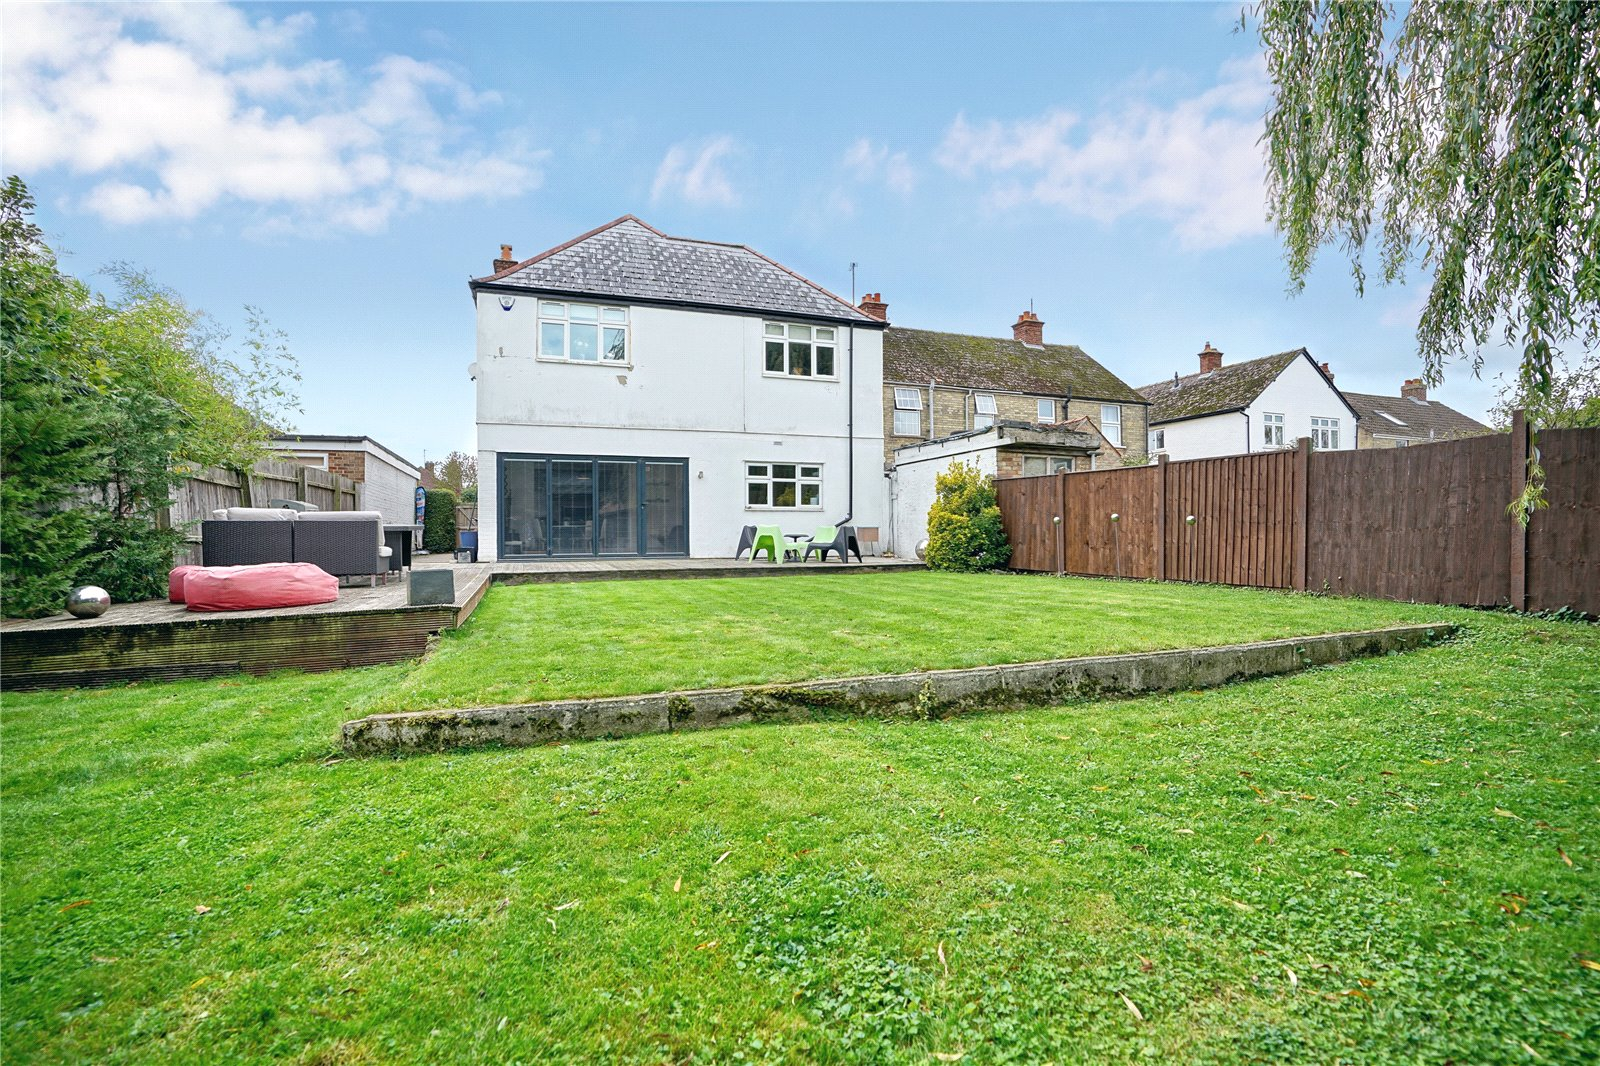 4 bed house for sale in St. Ives, PE27 3NG  - Property Image 1